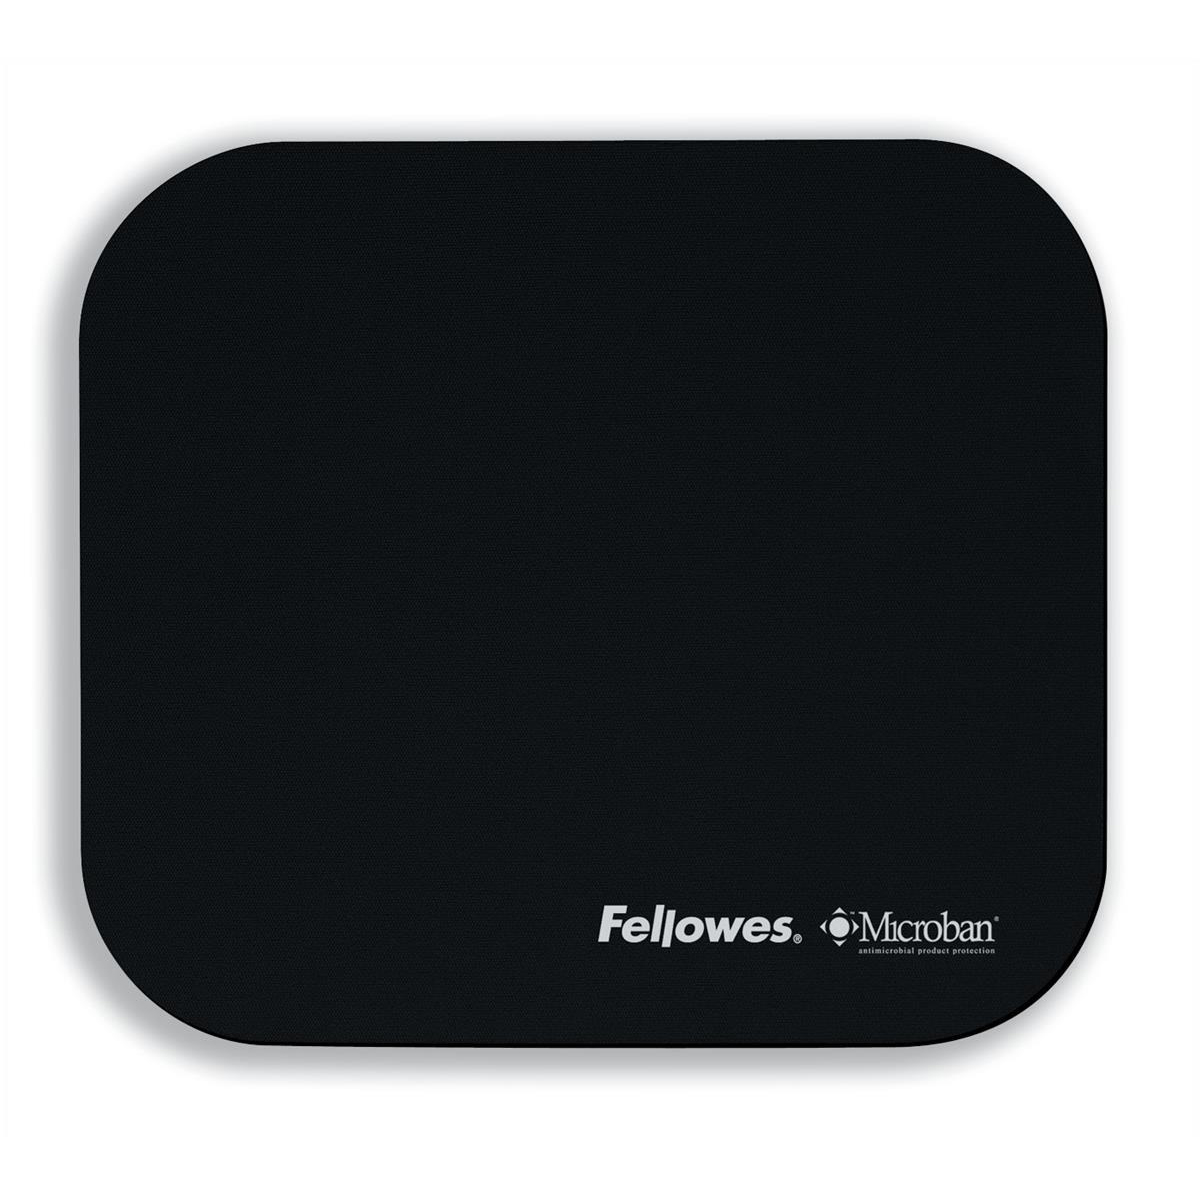 Mouse pads Fellowes Microban Mousepad Antibacterial with Non-slip Base Black Ref 5933907